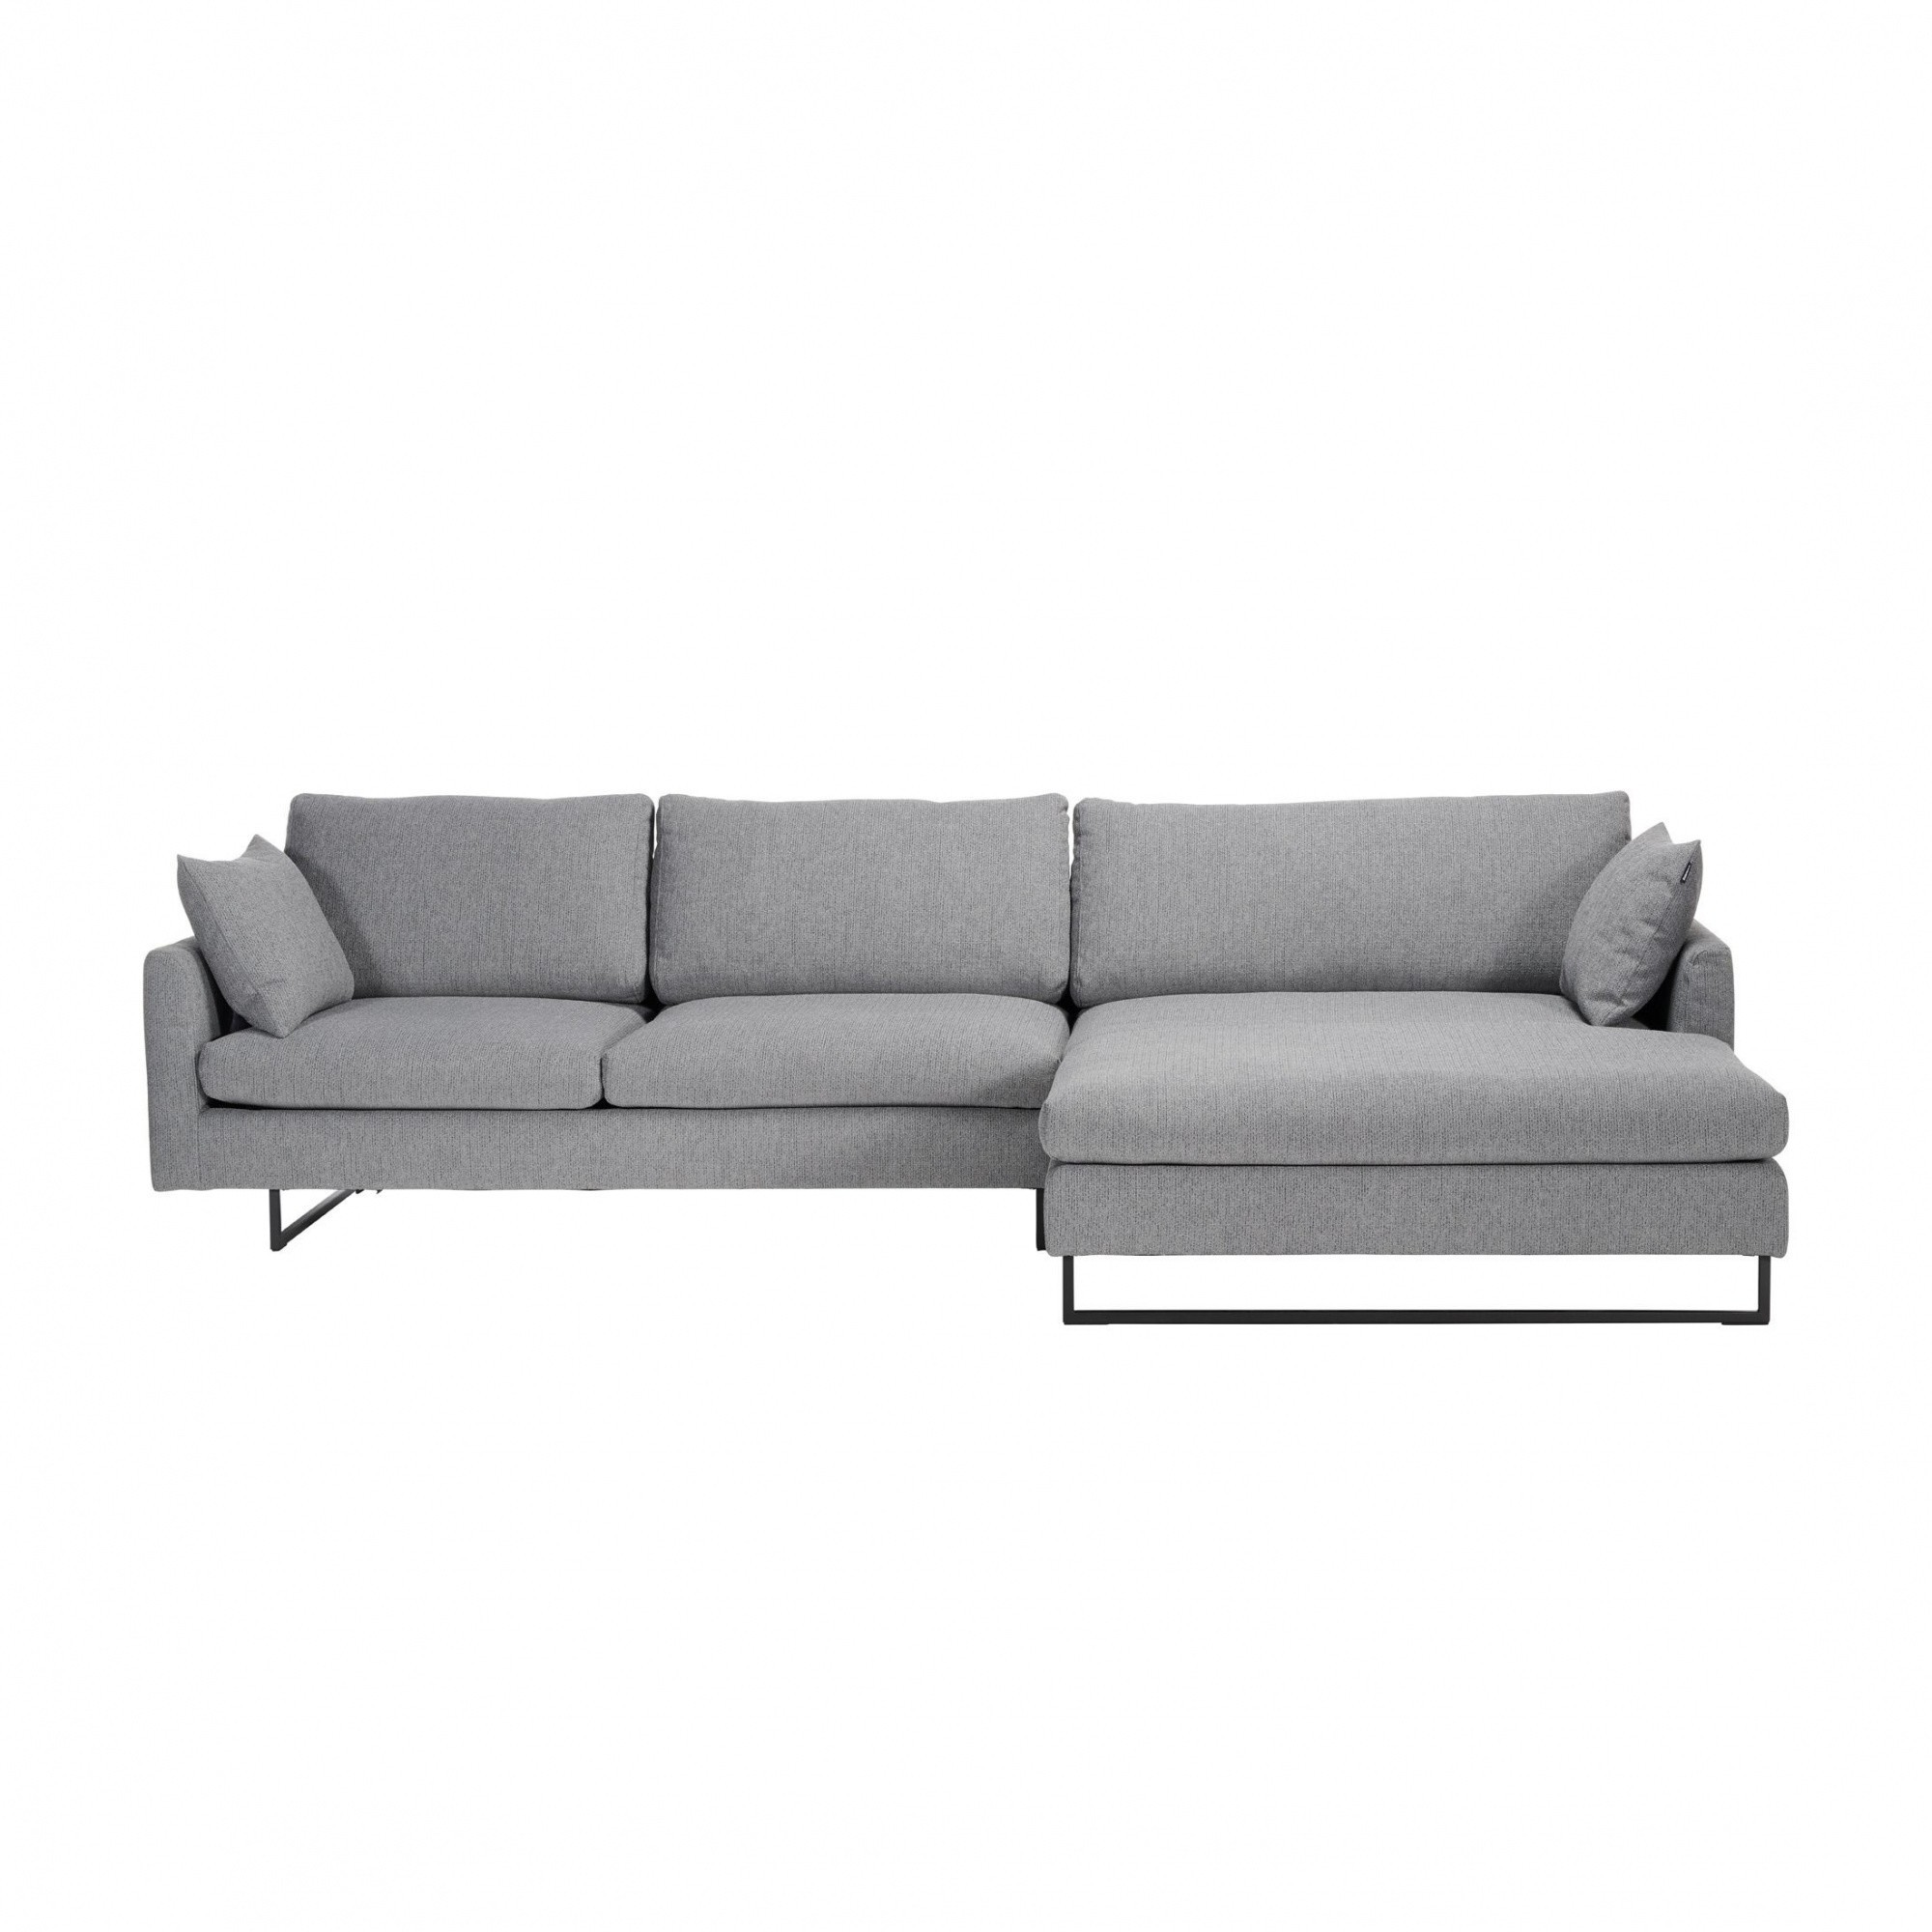 Freistil Rolf Benz Freistil 134 Loungesofa 314x177x88cm Ambientedirect